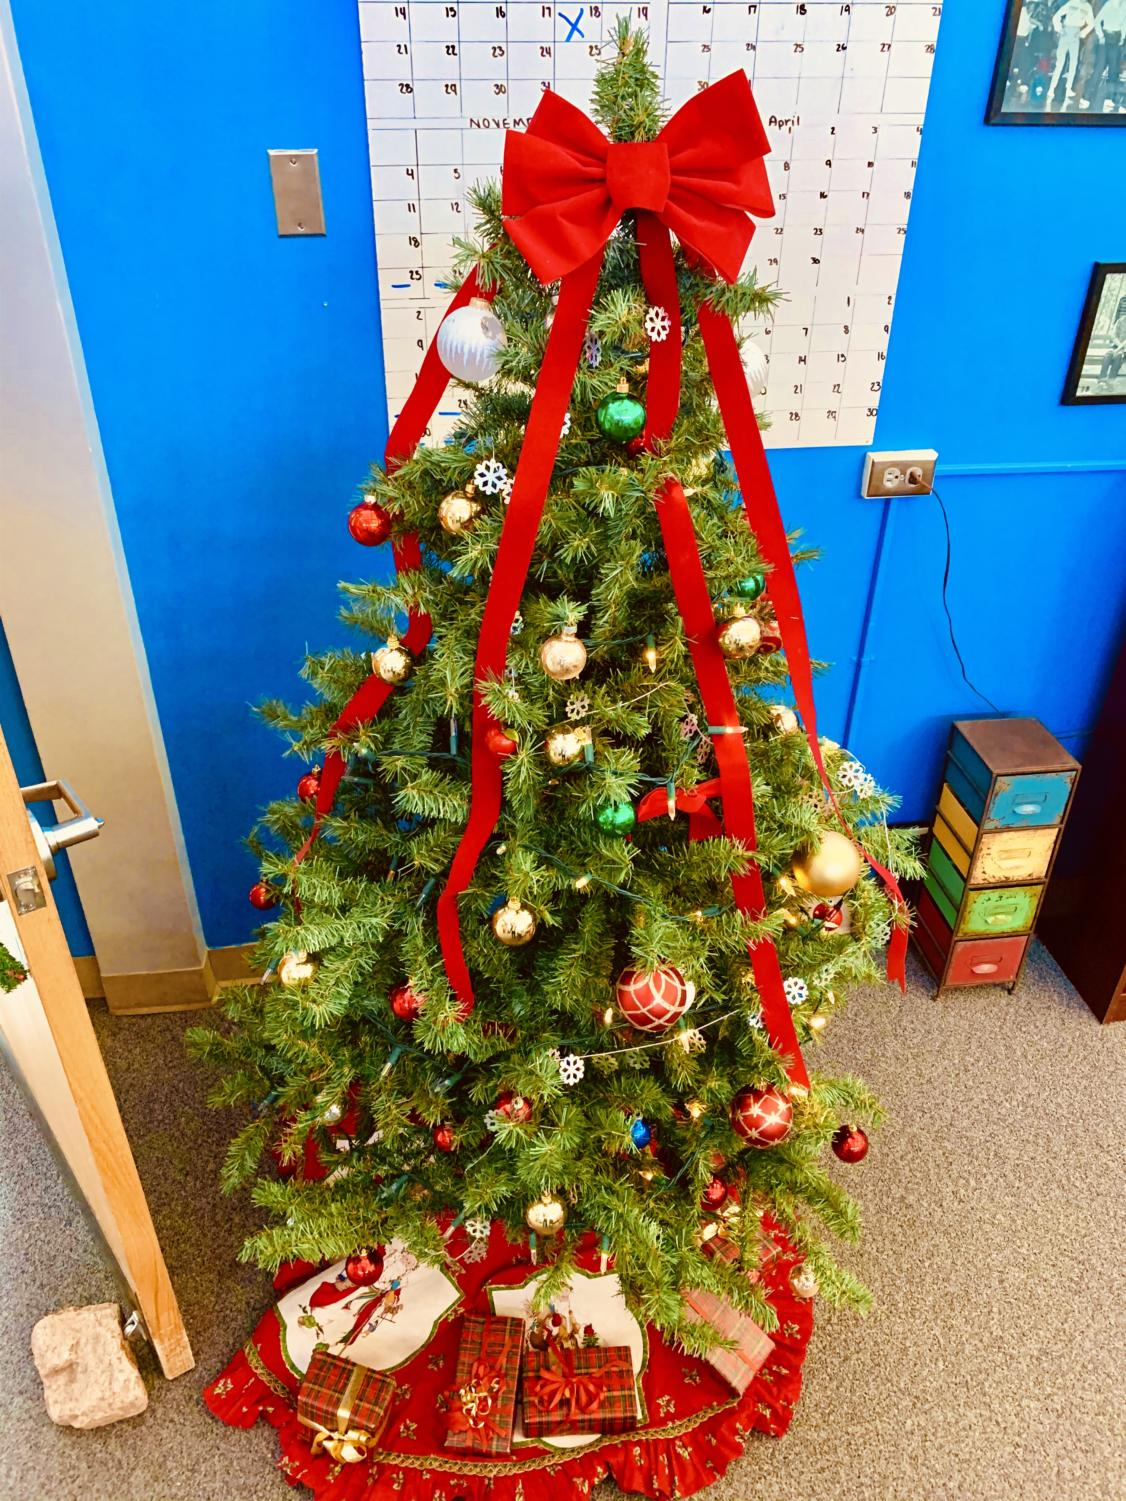 Student services honors a holiday tradition by getting in spirit with a tiny tree.